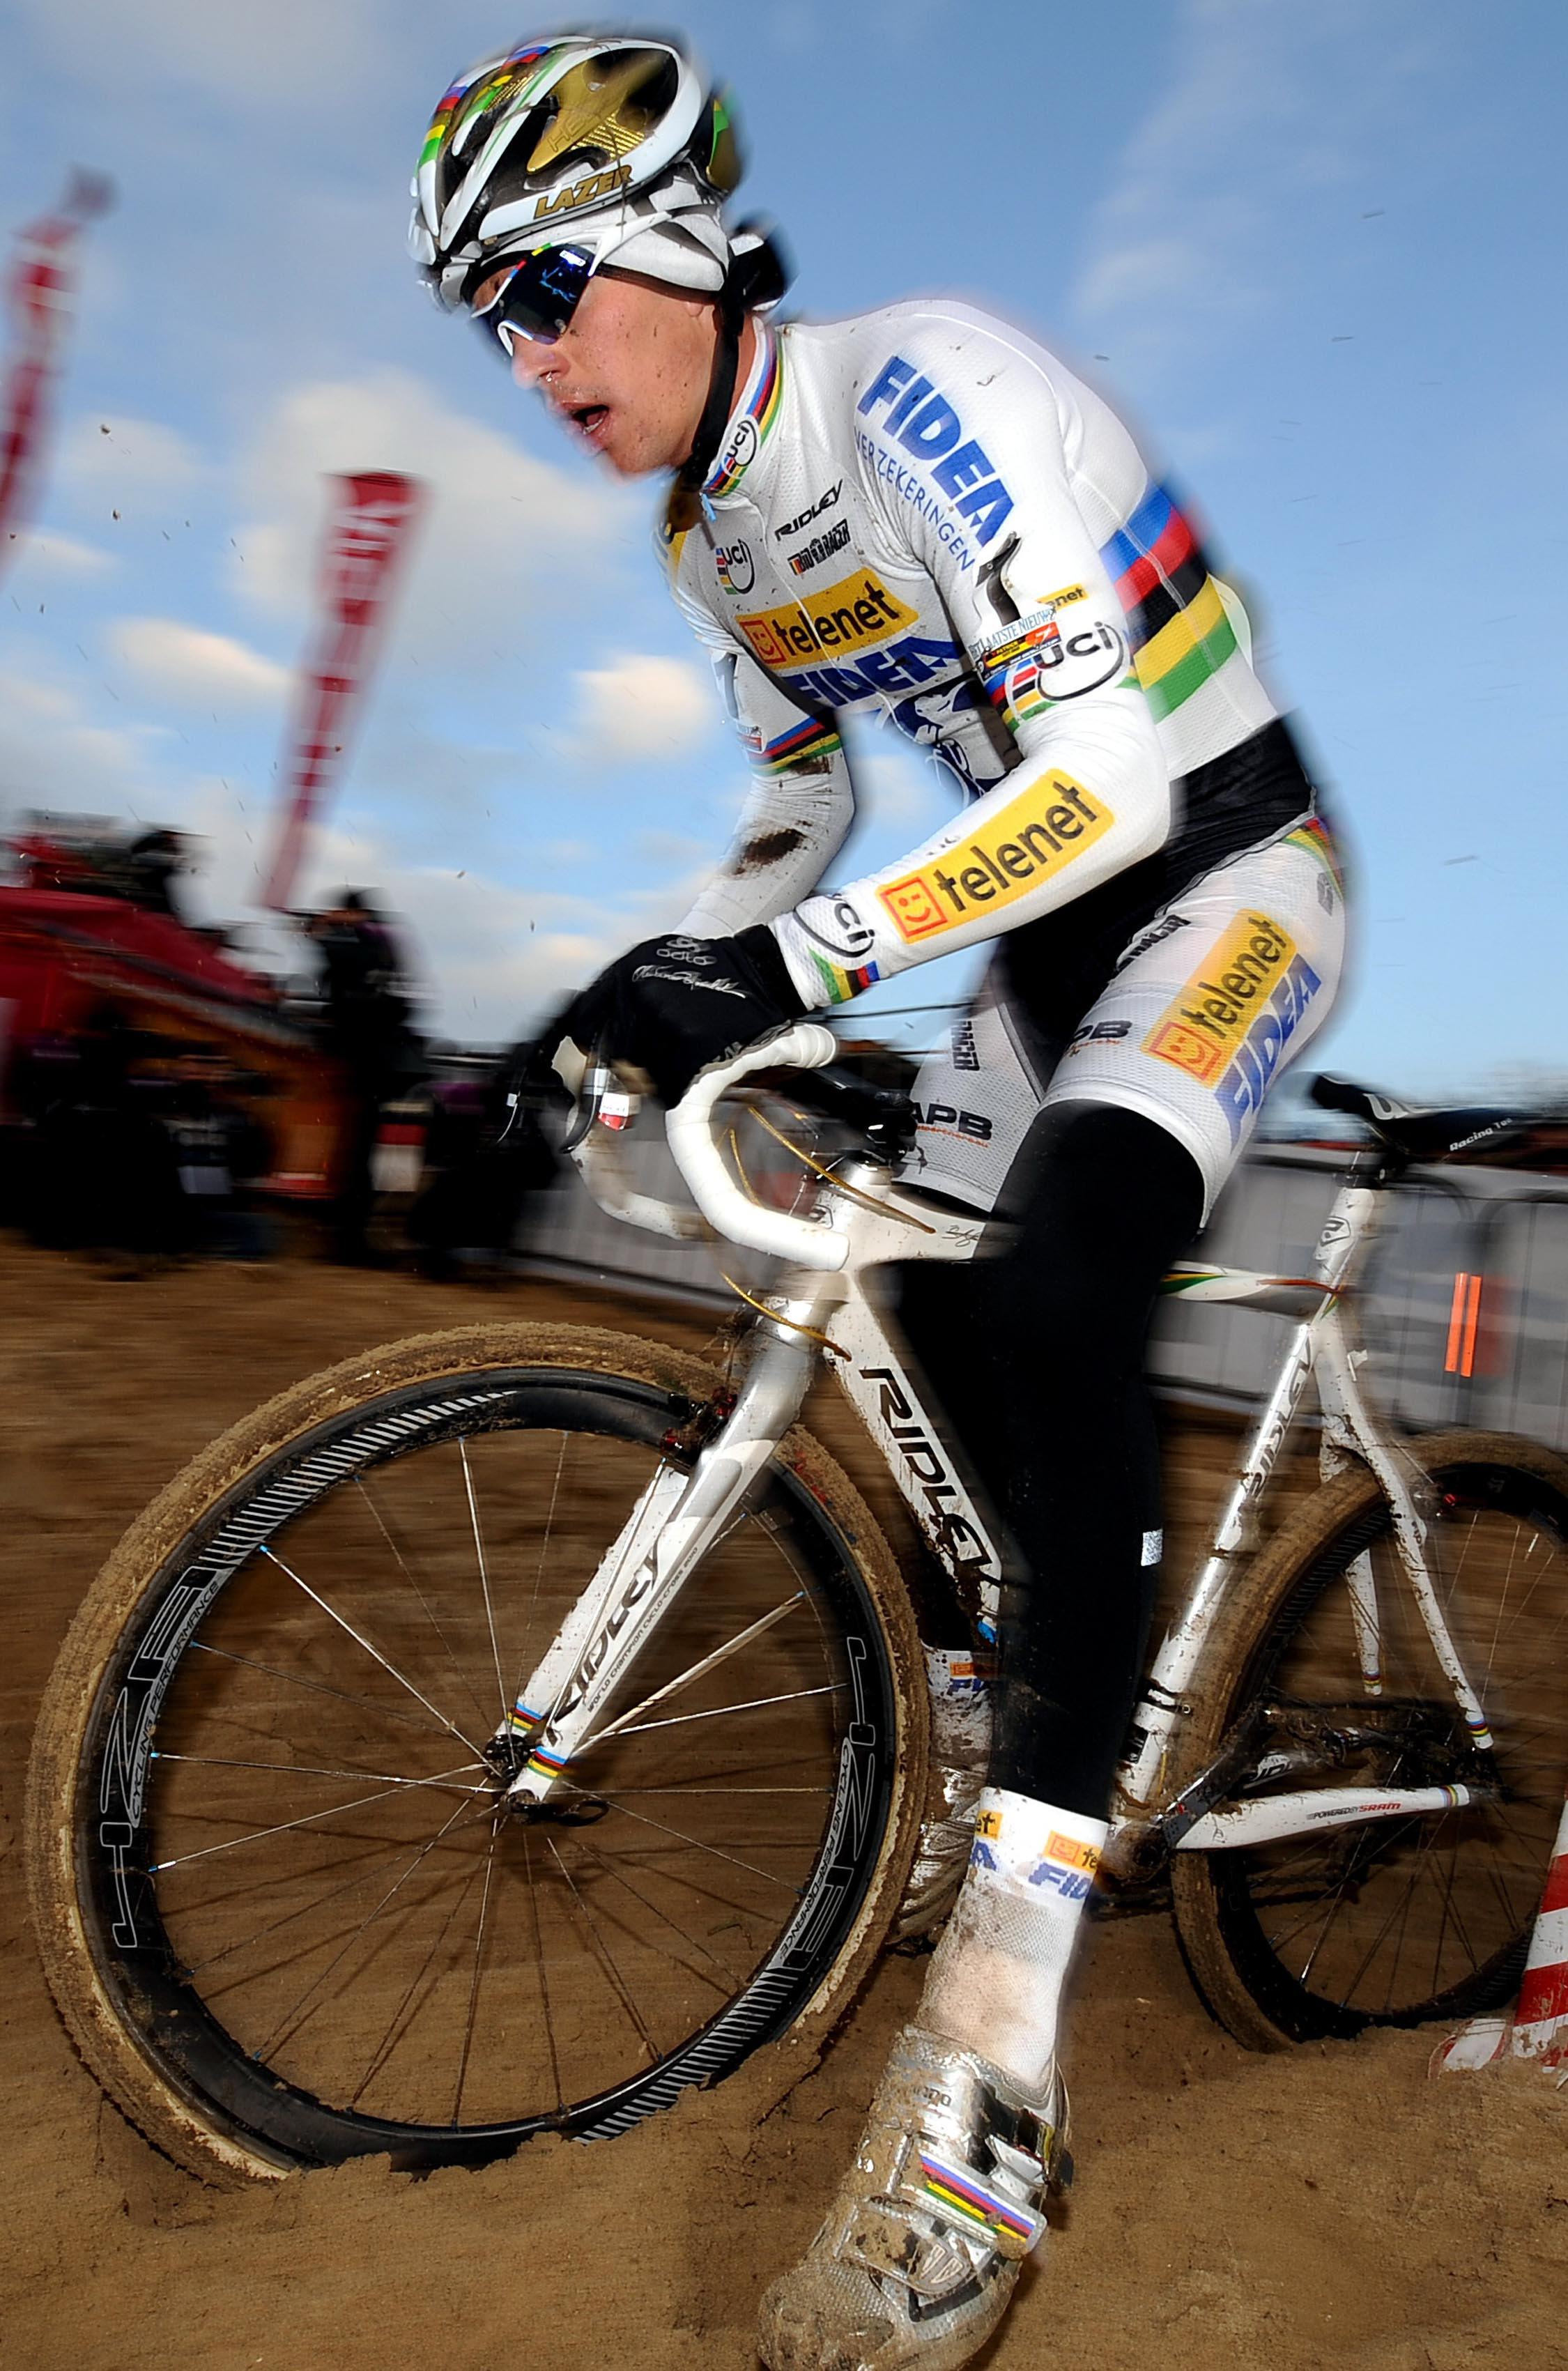 Zdenek Stybar, Koksijde cyclo-cross, UCI Cyclo-Cross World Cup 2010/2011